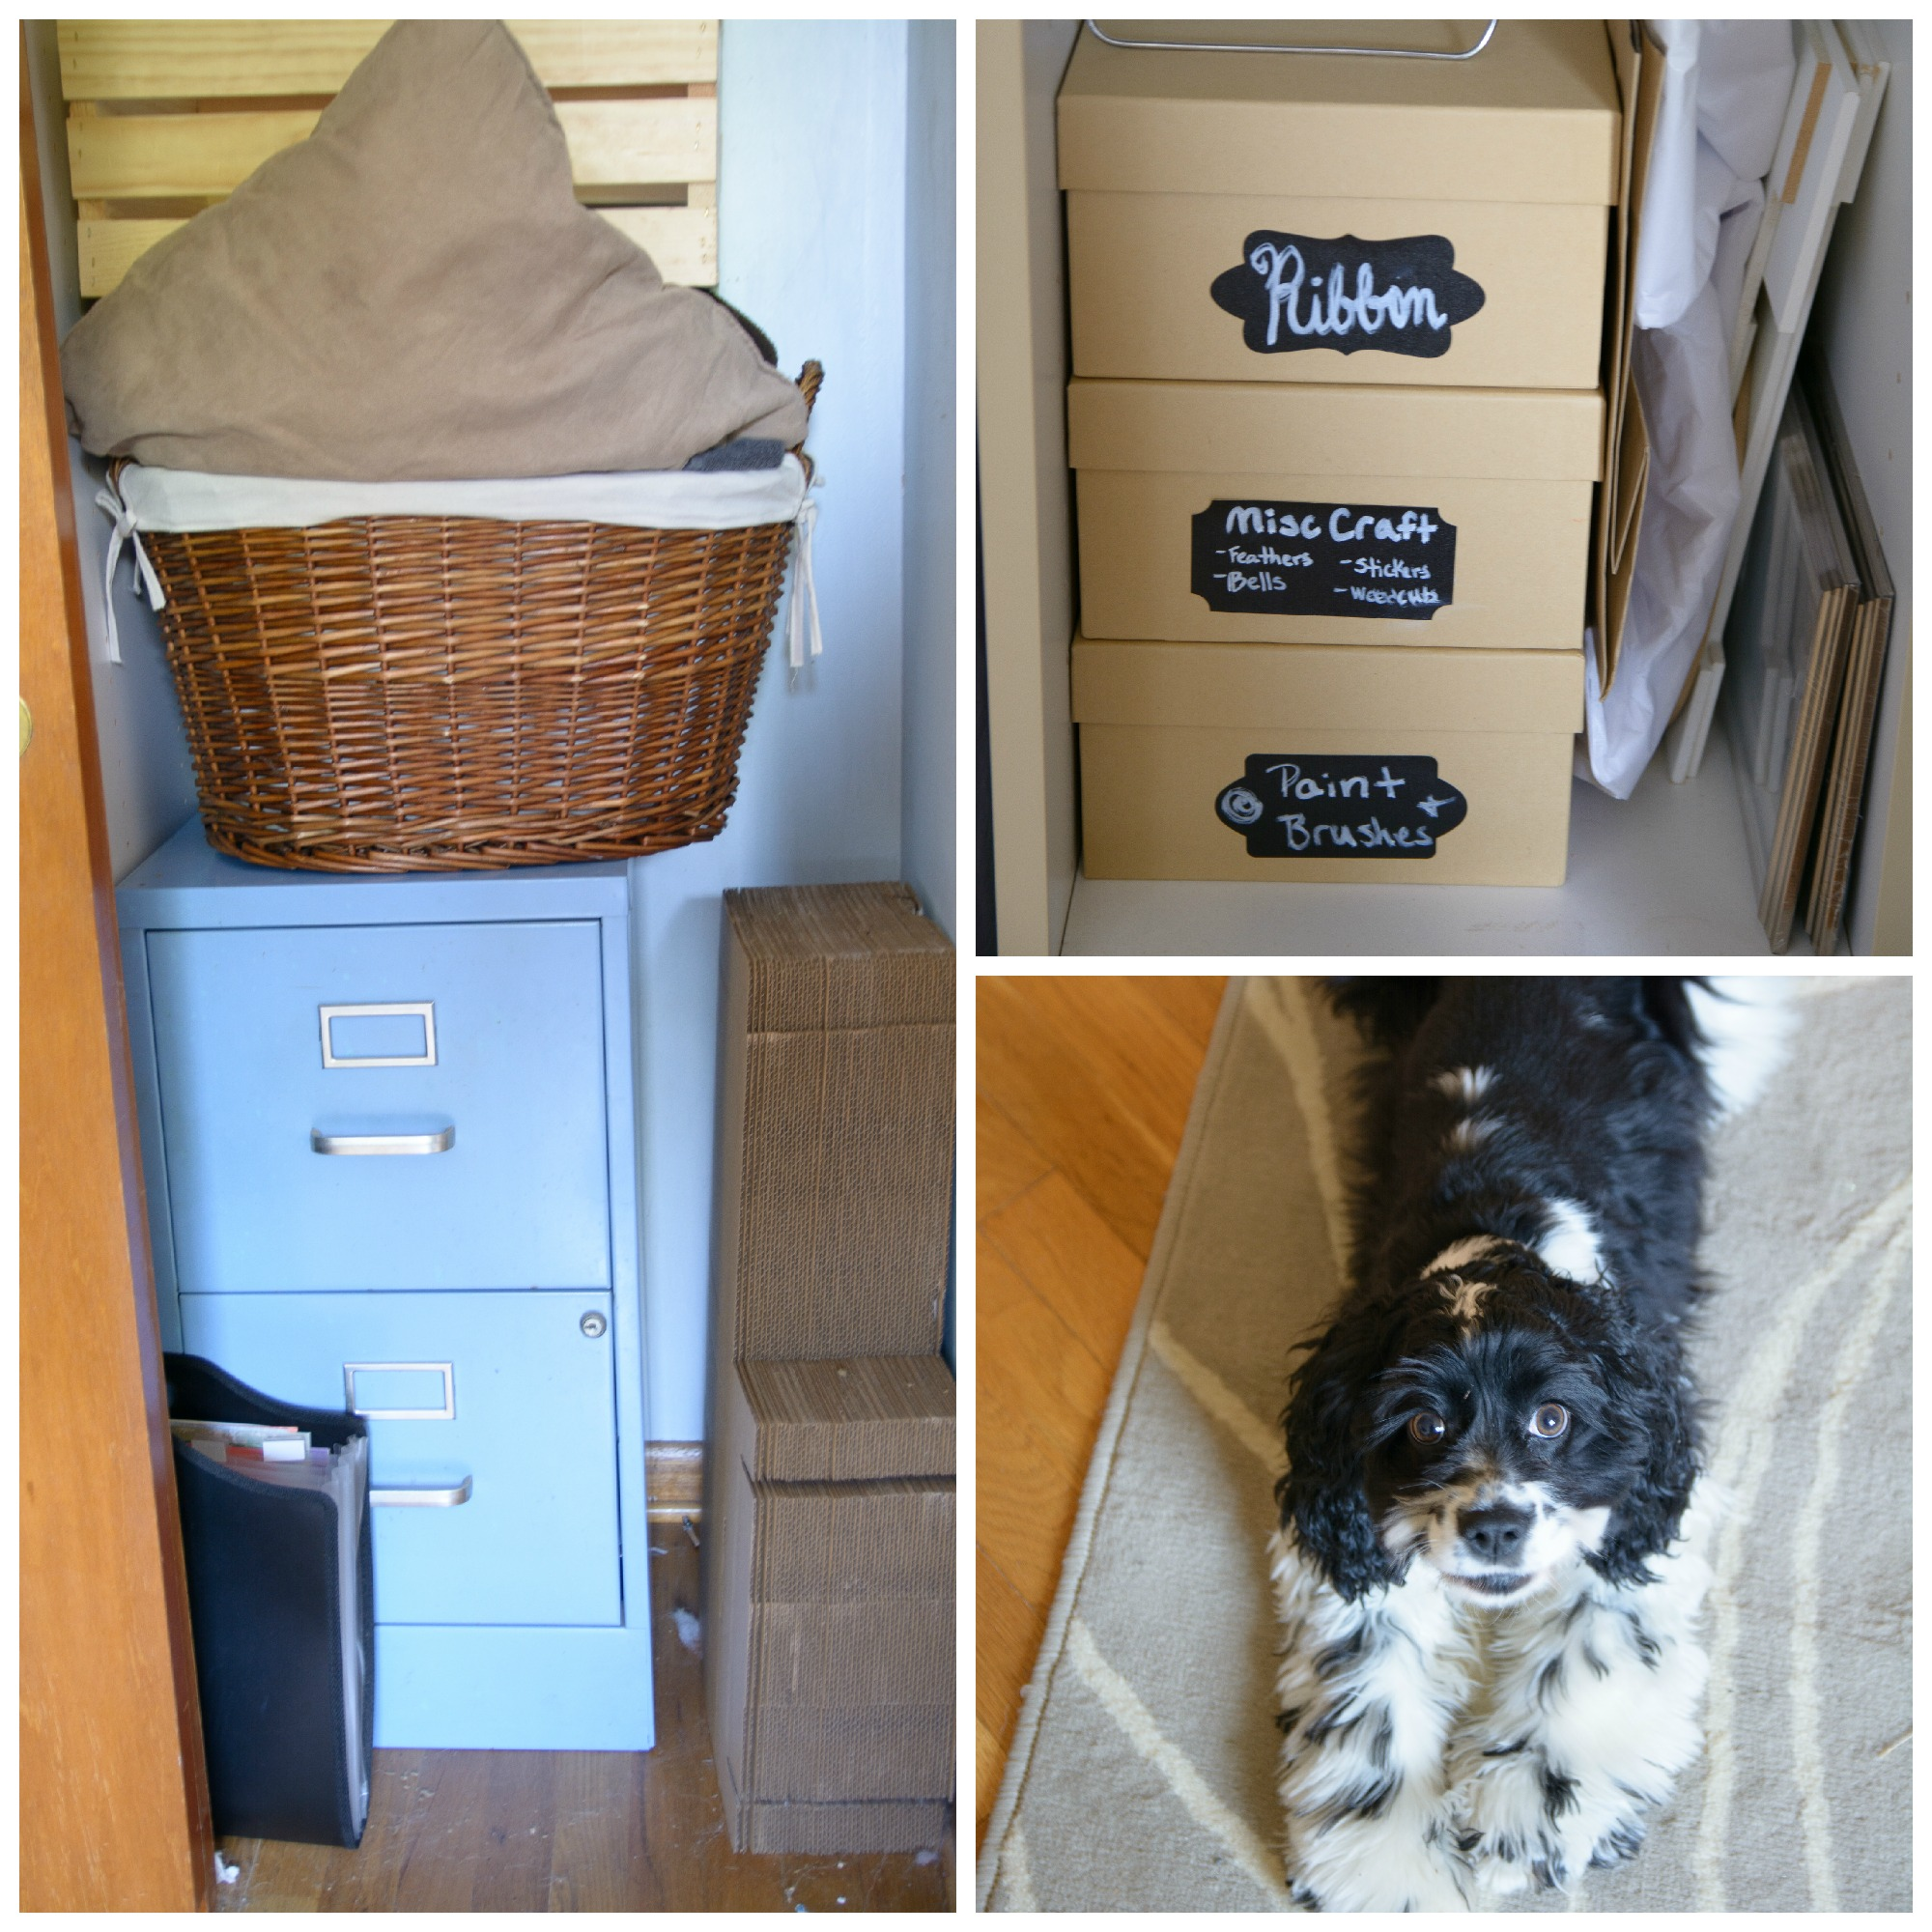 The closet holds some more craft supplies and the larger photography props. Tirzah is also a frequent visitor of my creative space!